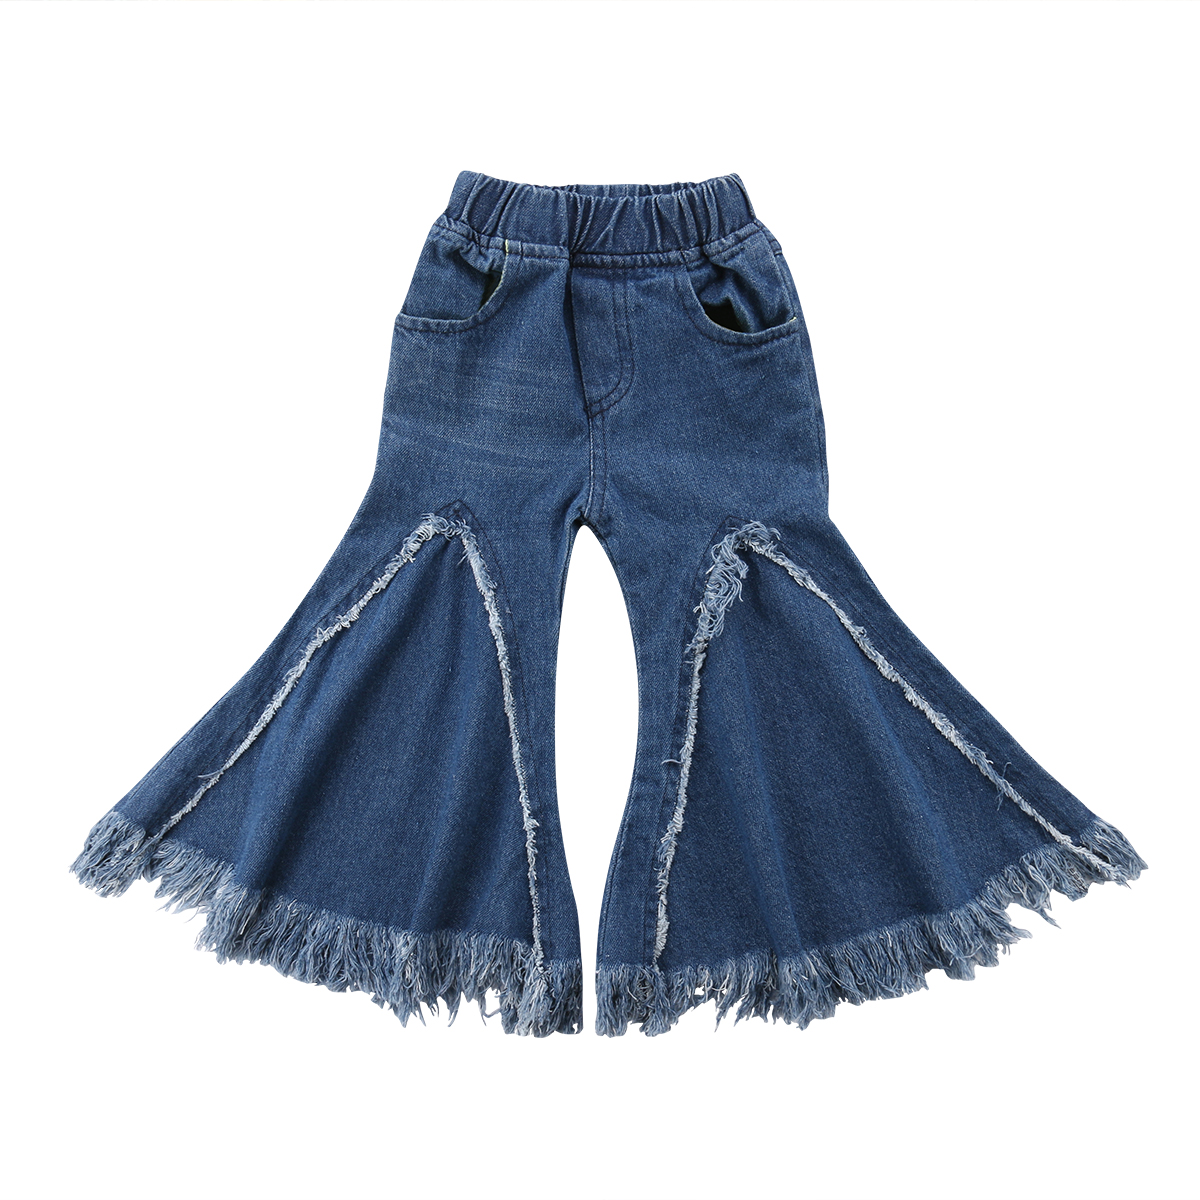 776234bc94 Baby Girls Jeans Trousers Kids Toddler Casual Wide Leg Denim Blue Pants  Bottoms